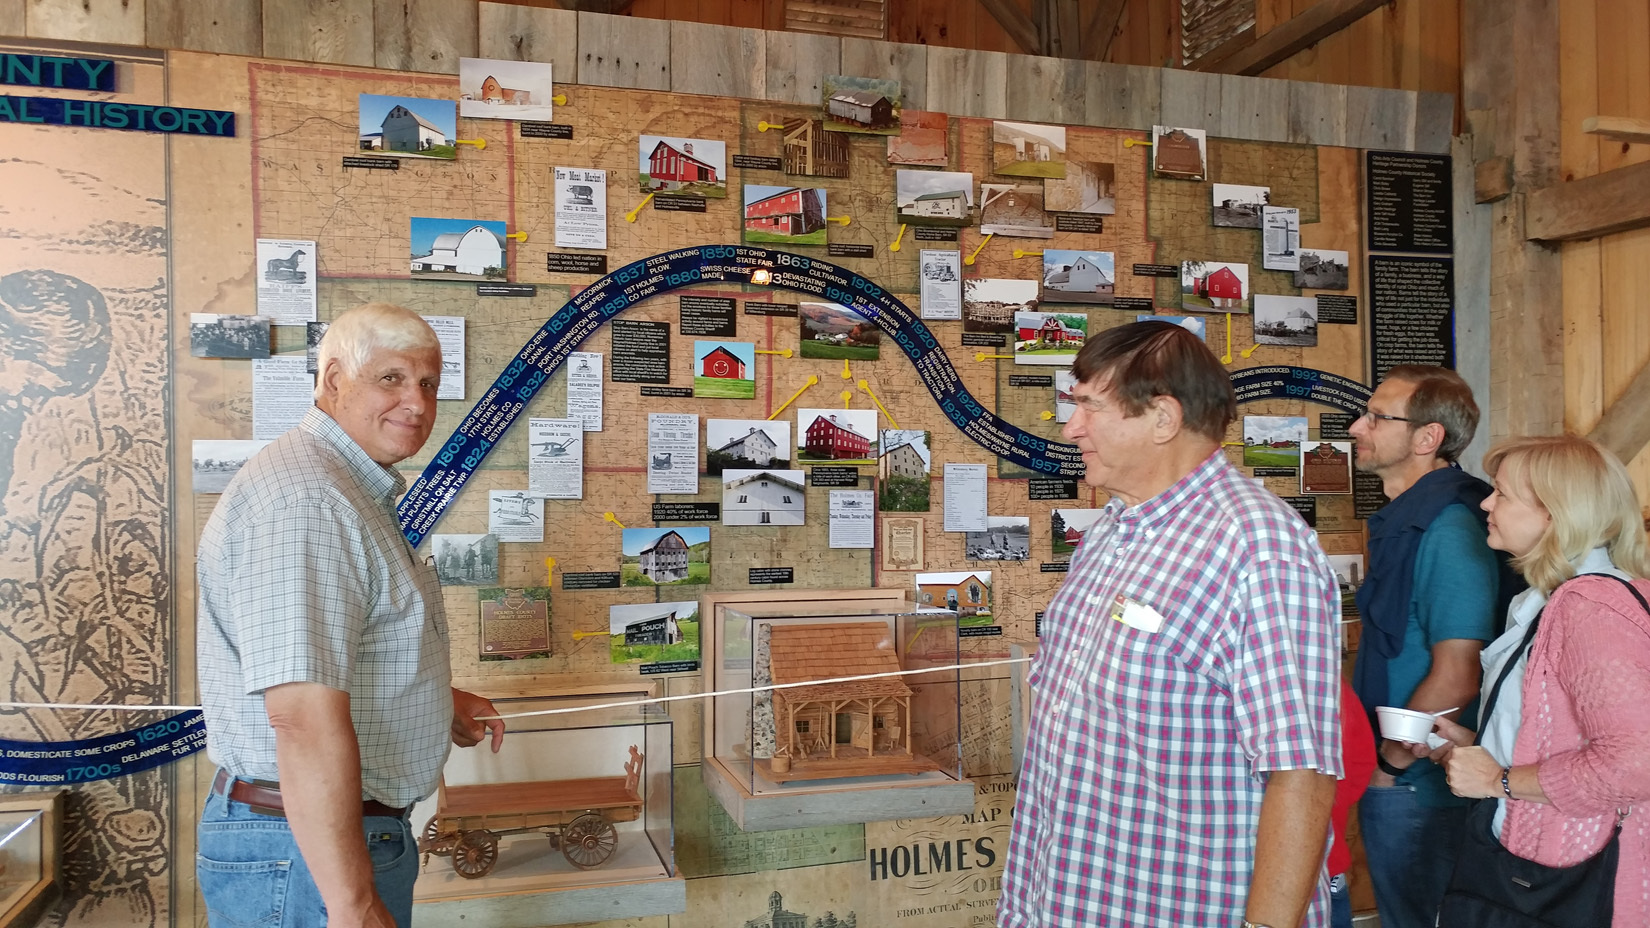 Rep. Bob Gibbs Visits New Ag History Display